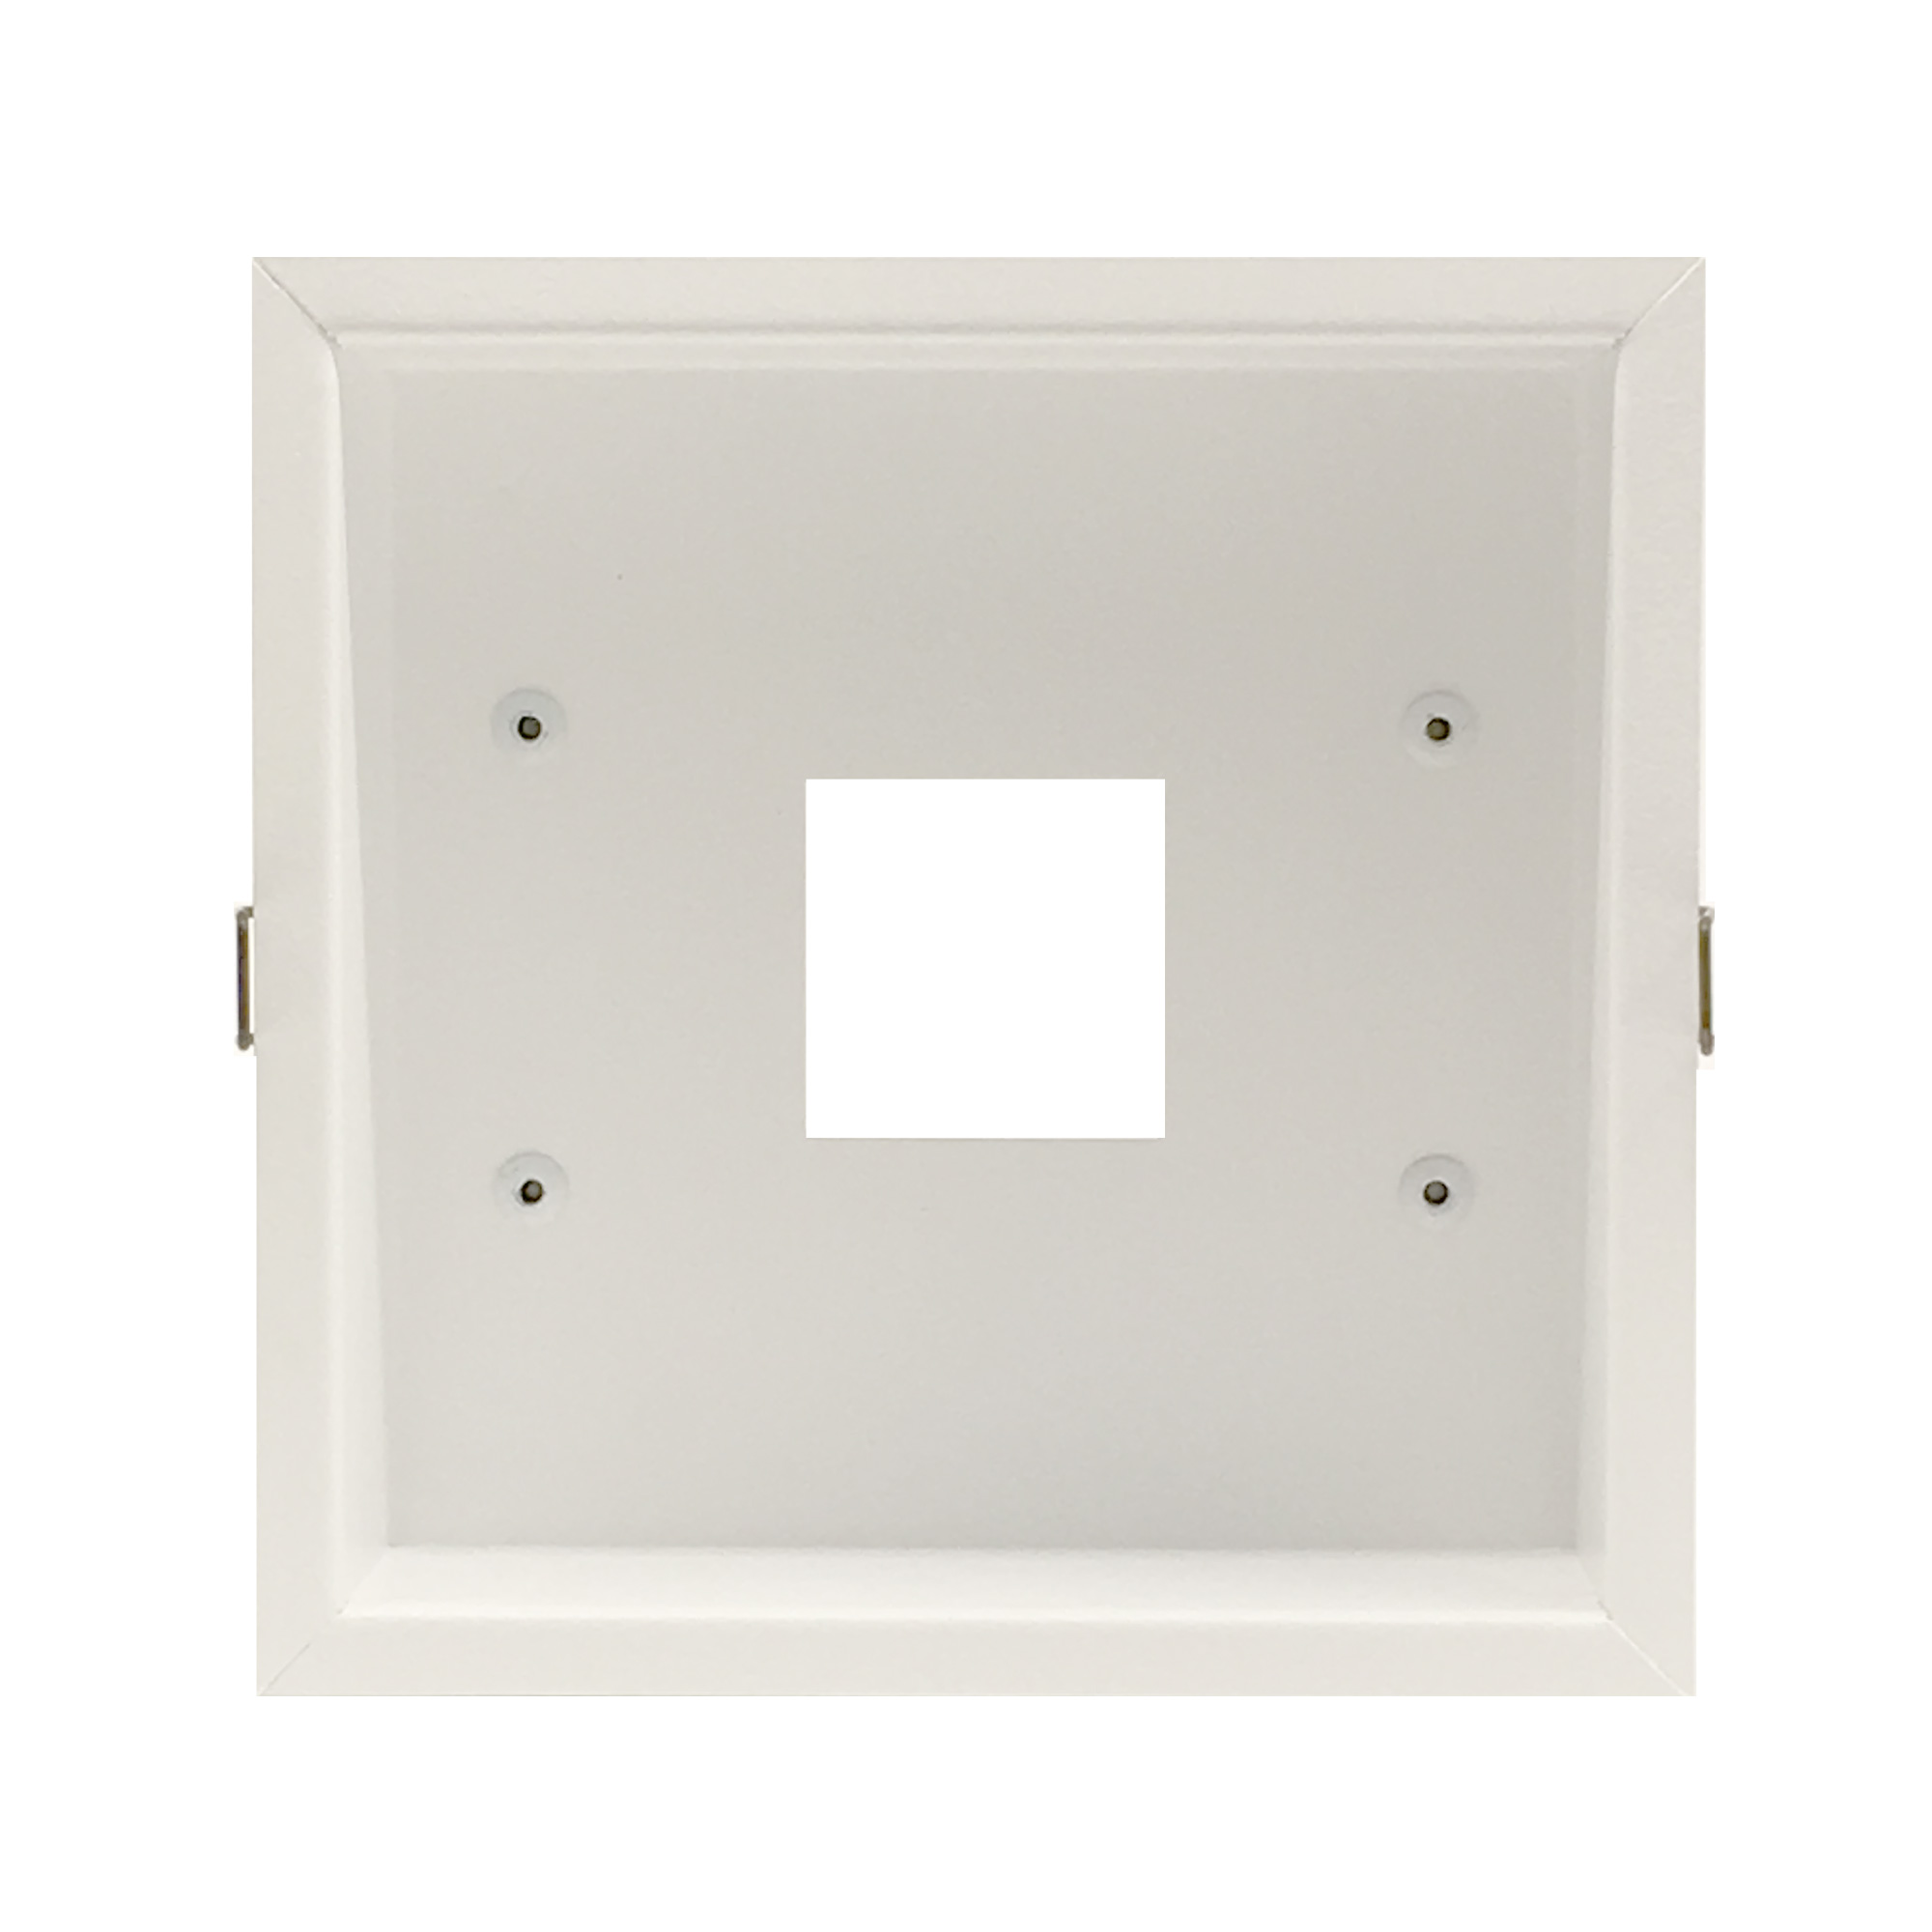 Recessed Trim Kit Airelight Square 4.0  Black -  SKU: 44678  White -  SKU: 49018